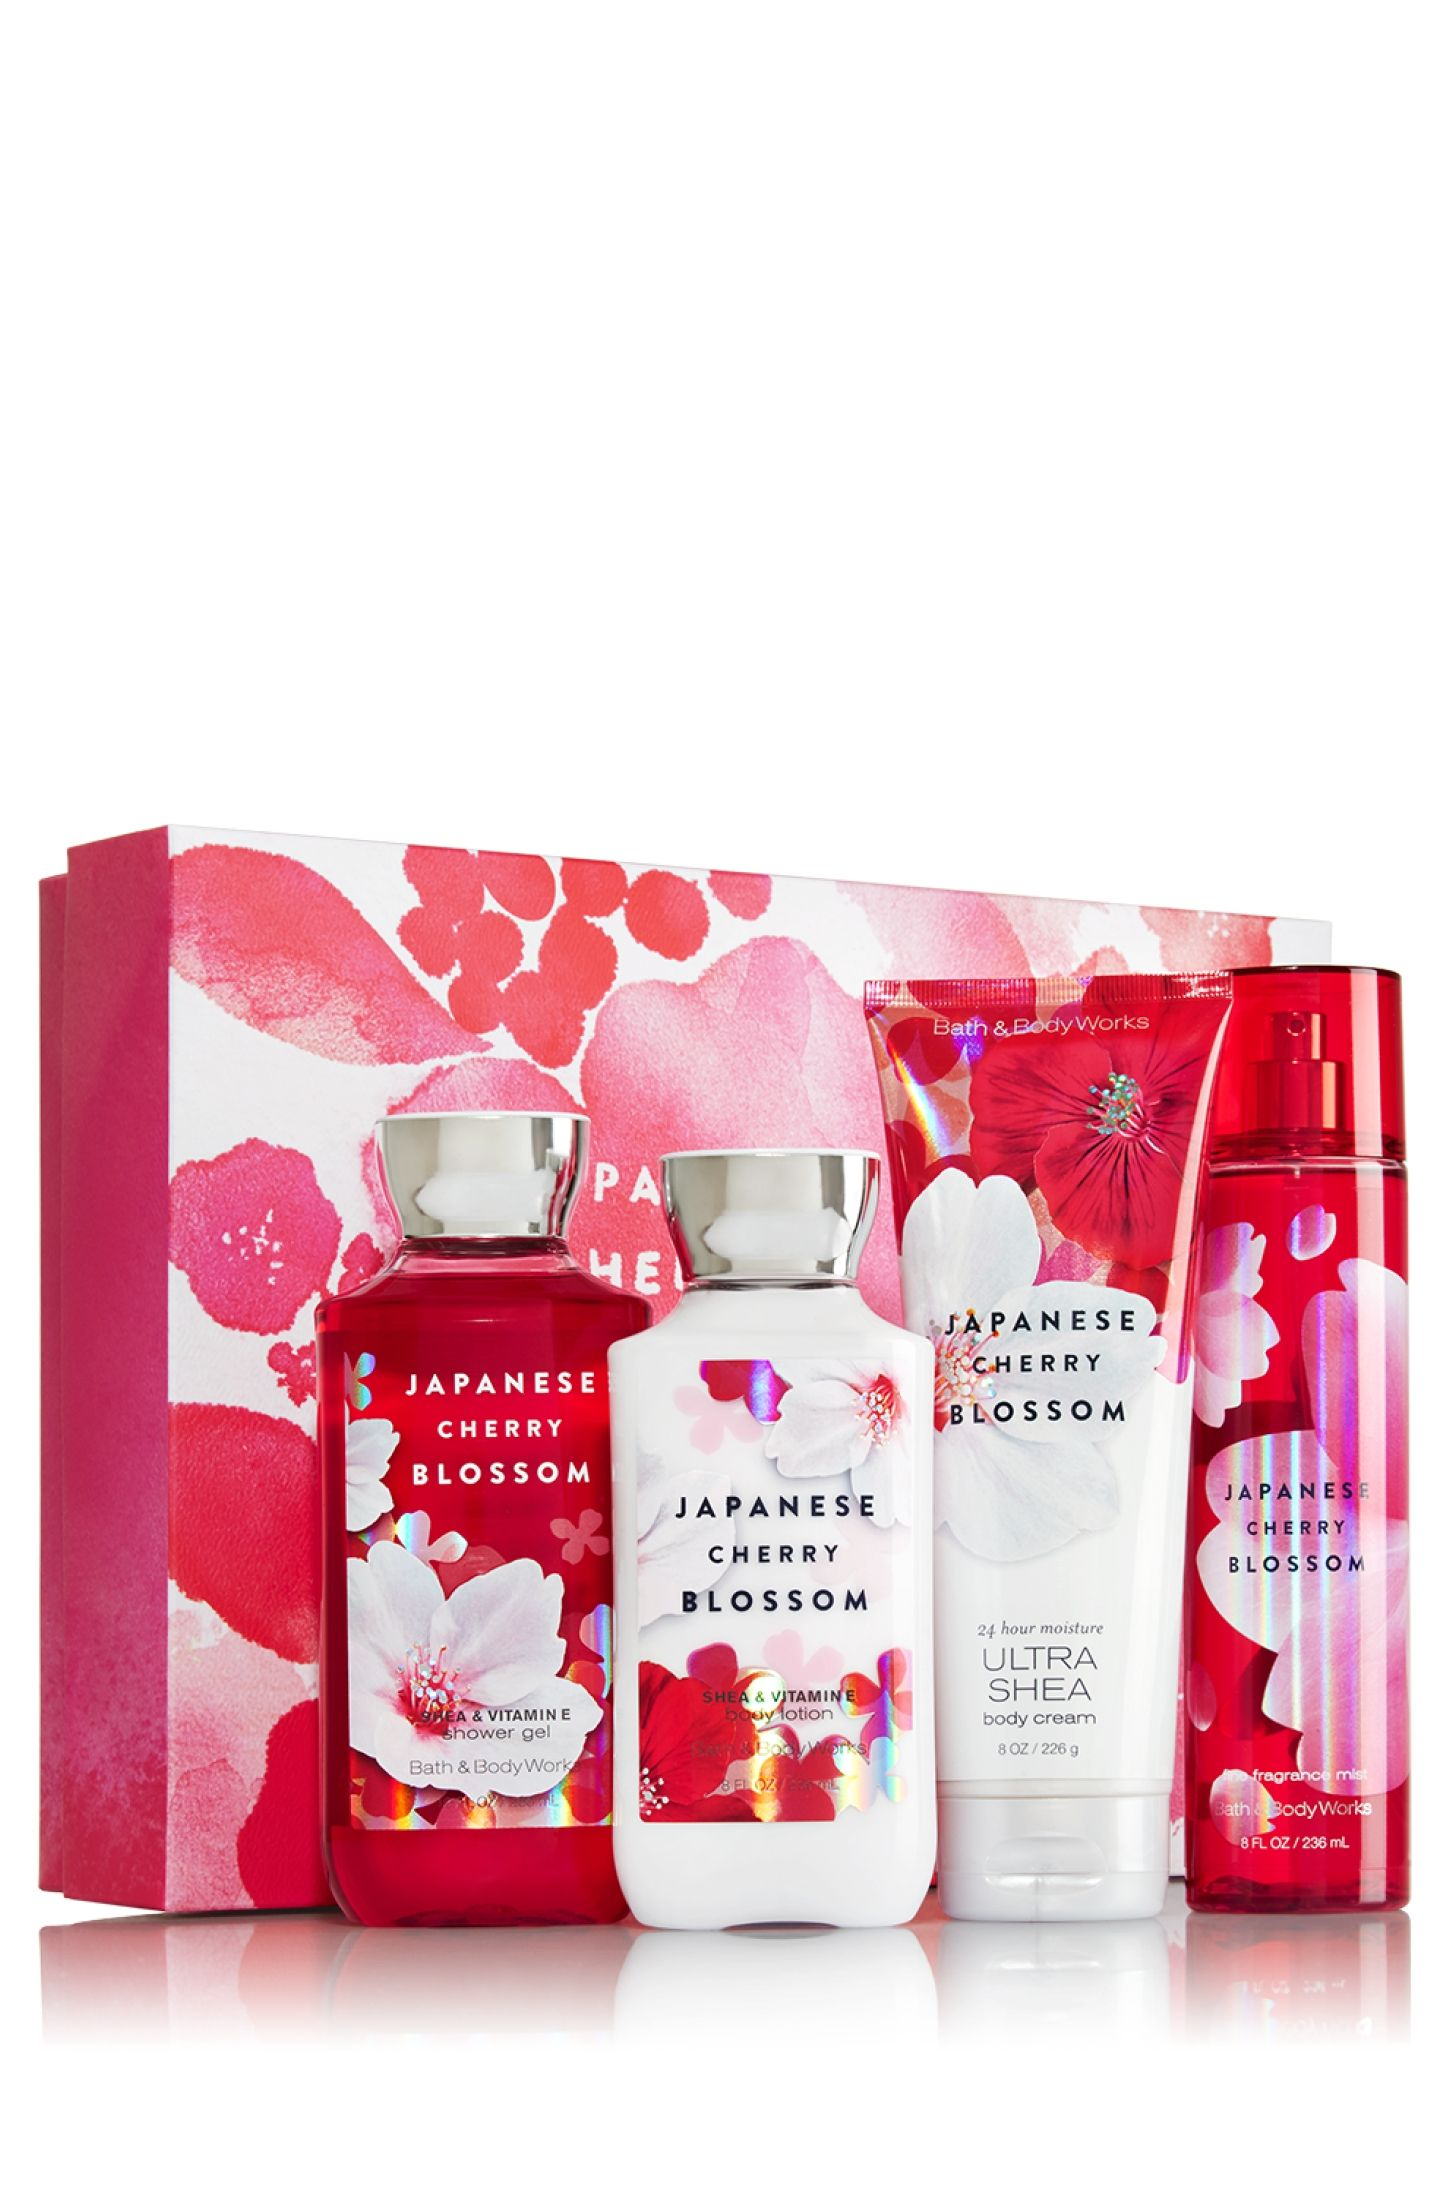 fdc1cfde9d15 Bath & Body Works Just 4 You Gift Set Japanese Cherry Blossom | Bath ...